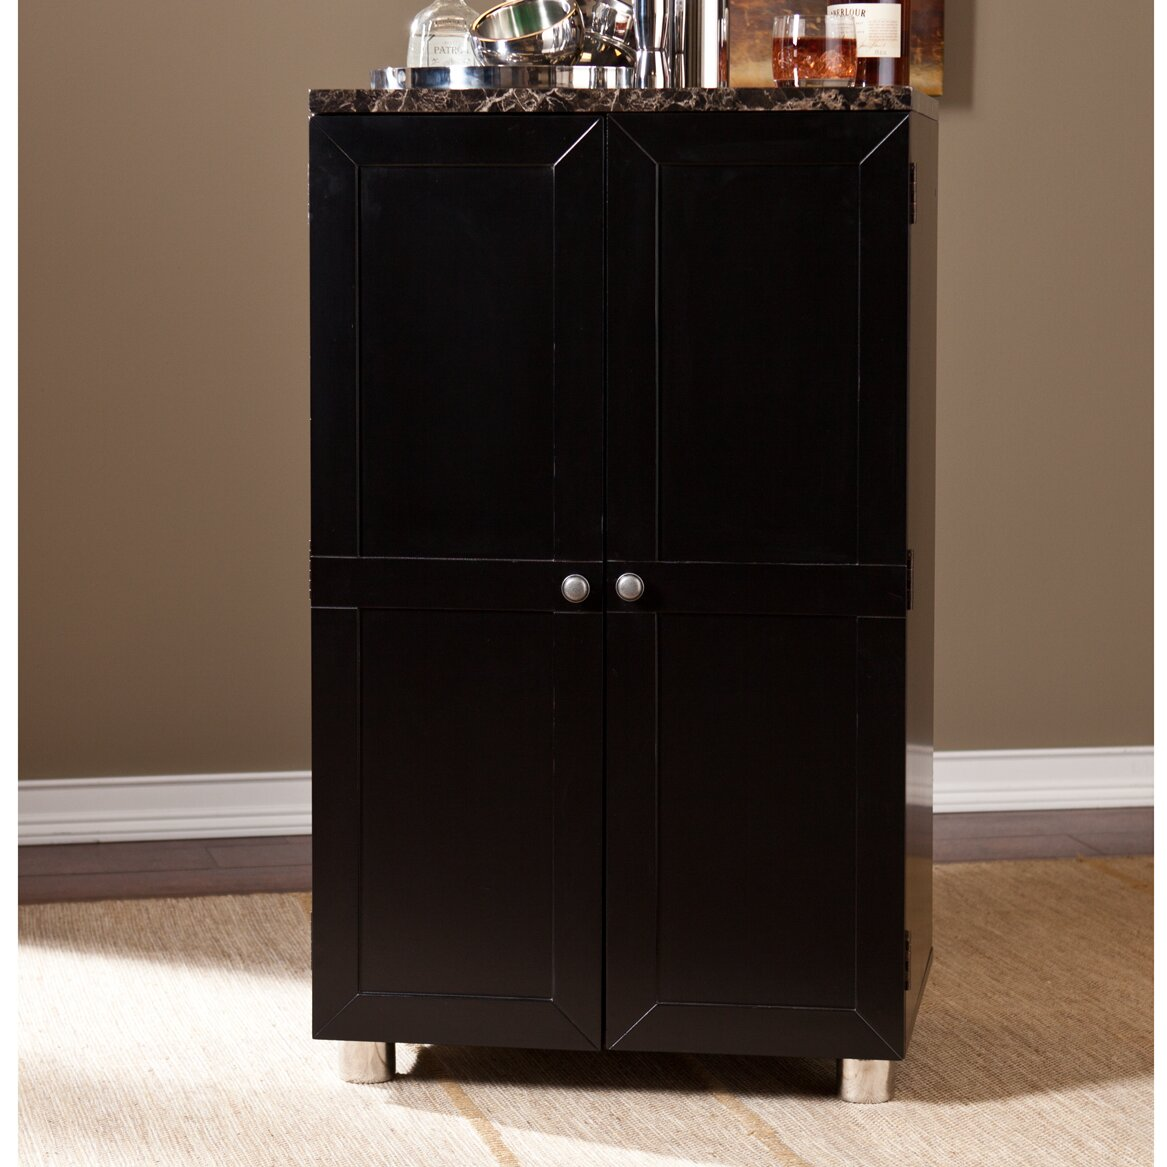 Home Depot Cabinets Review: Wildon Home ® Capri Bar Cabinet With Wine Storage